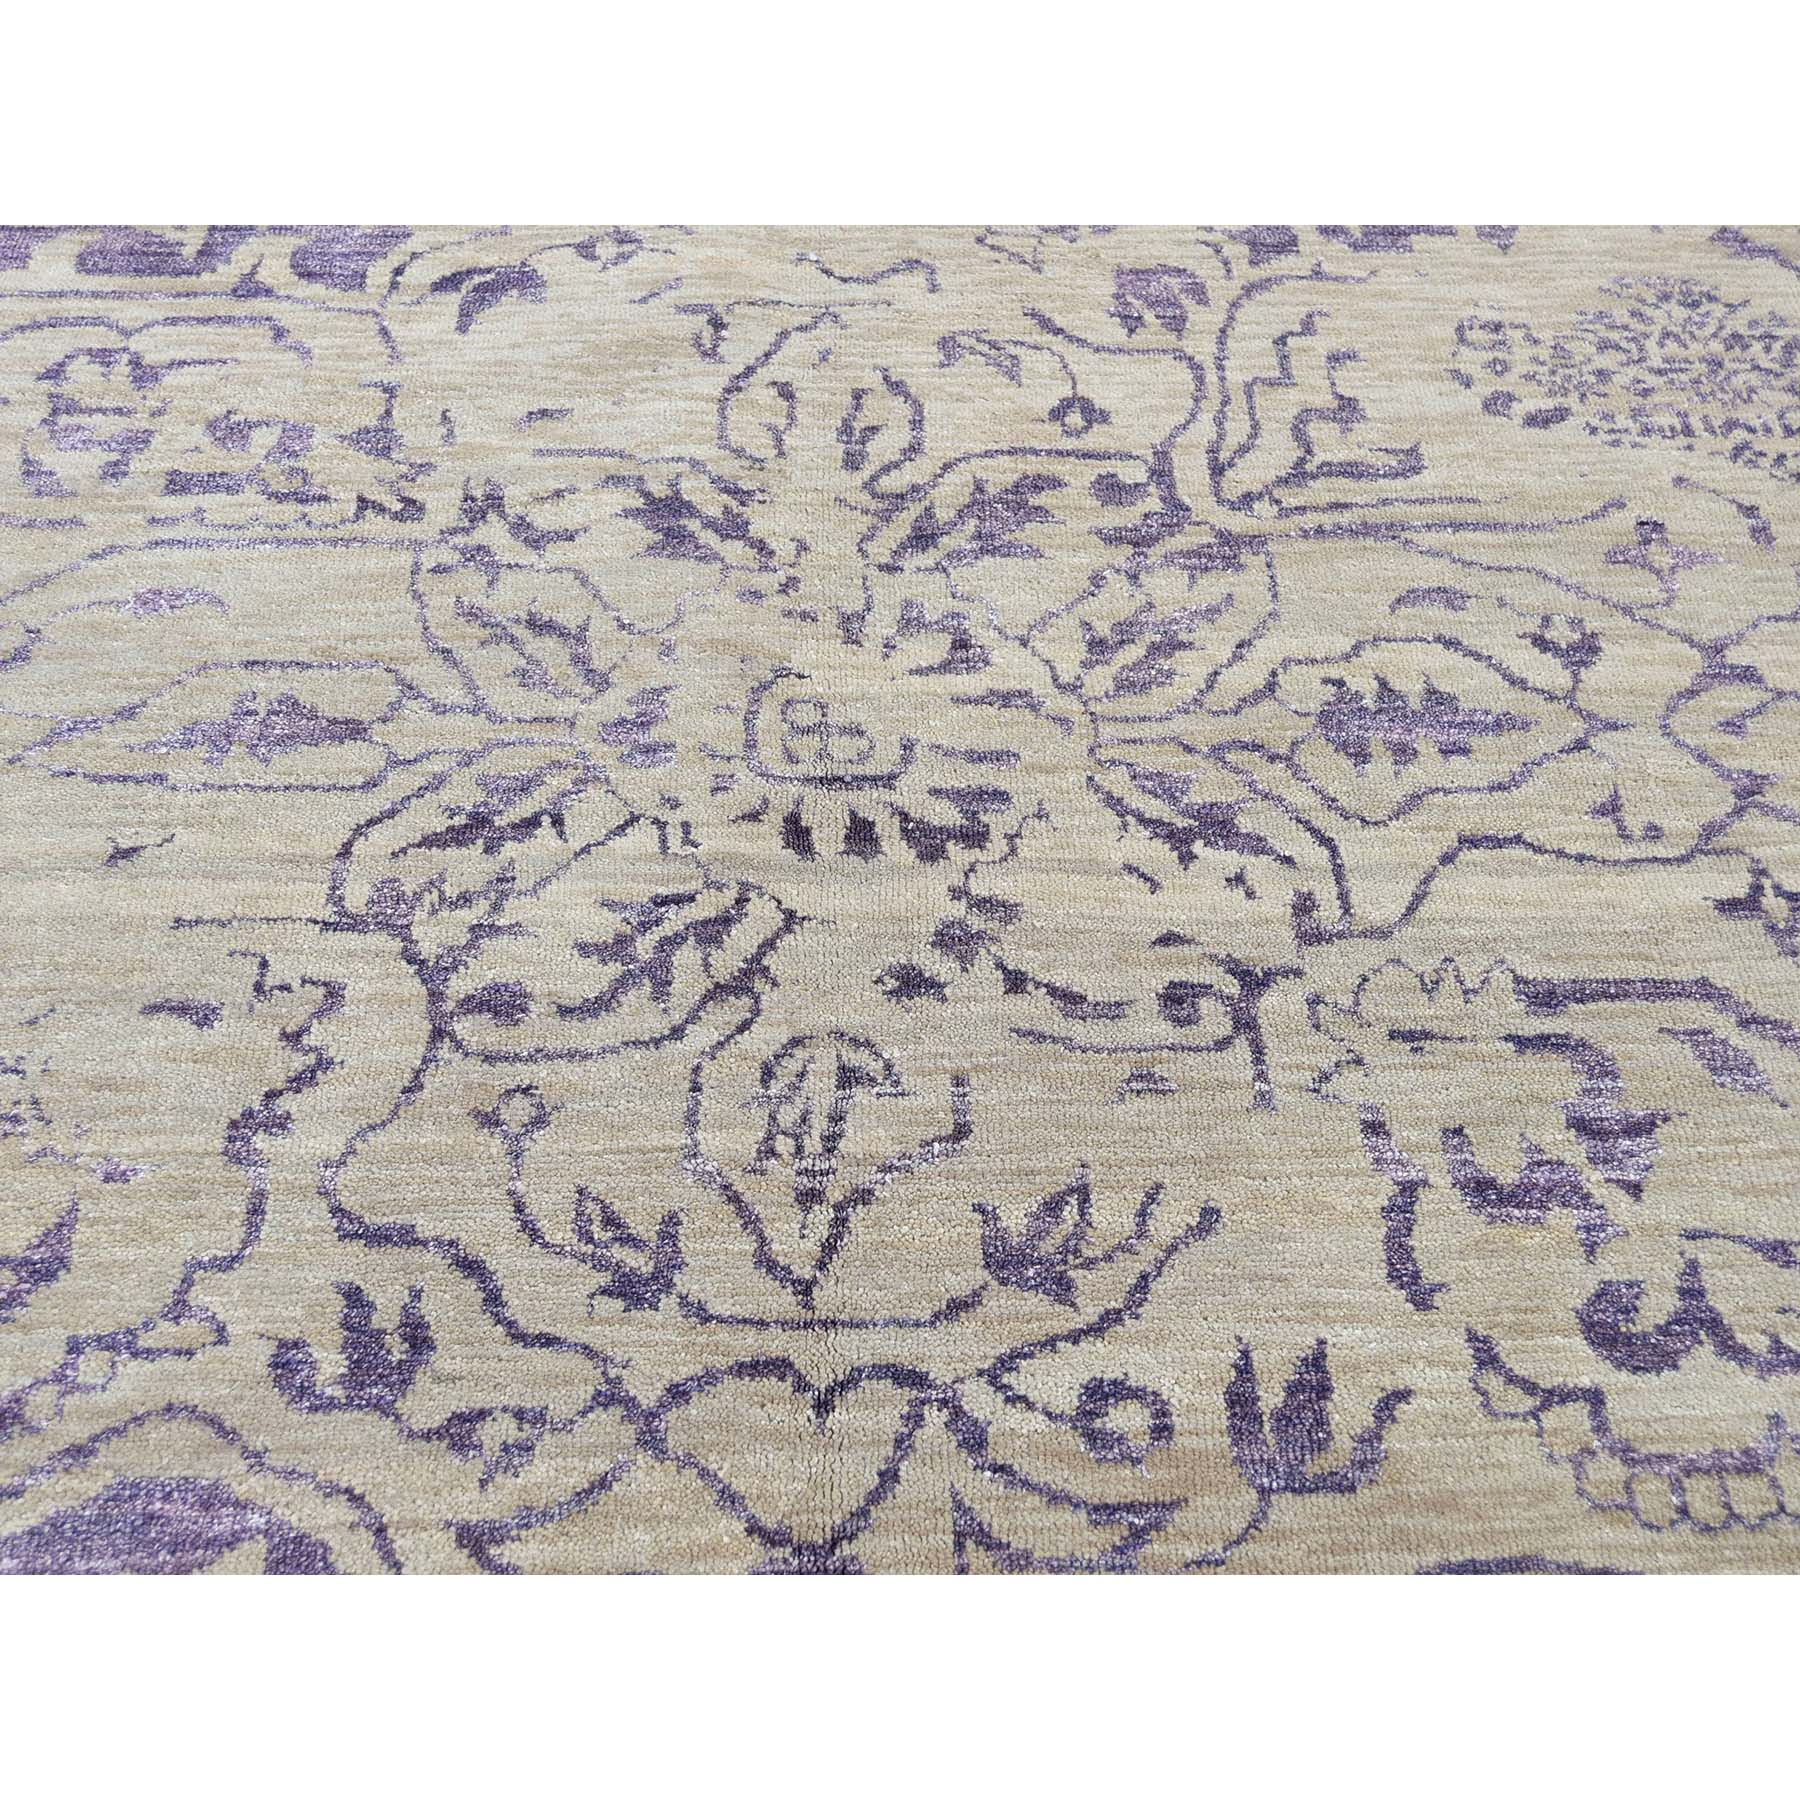 9-x12- Wool and Silk Tone on Tone Broken Design Kashan Ultra Violet Hand Knotted Rug